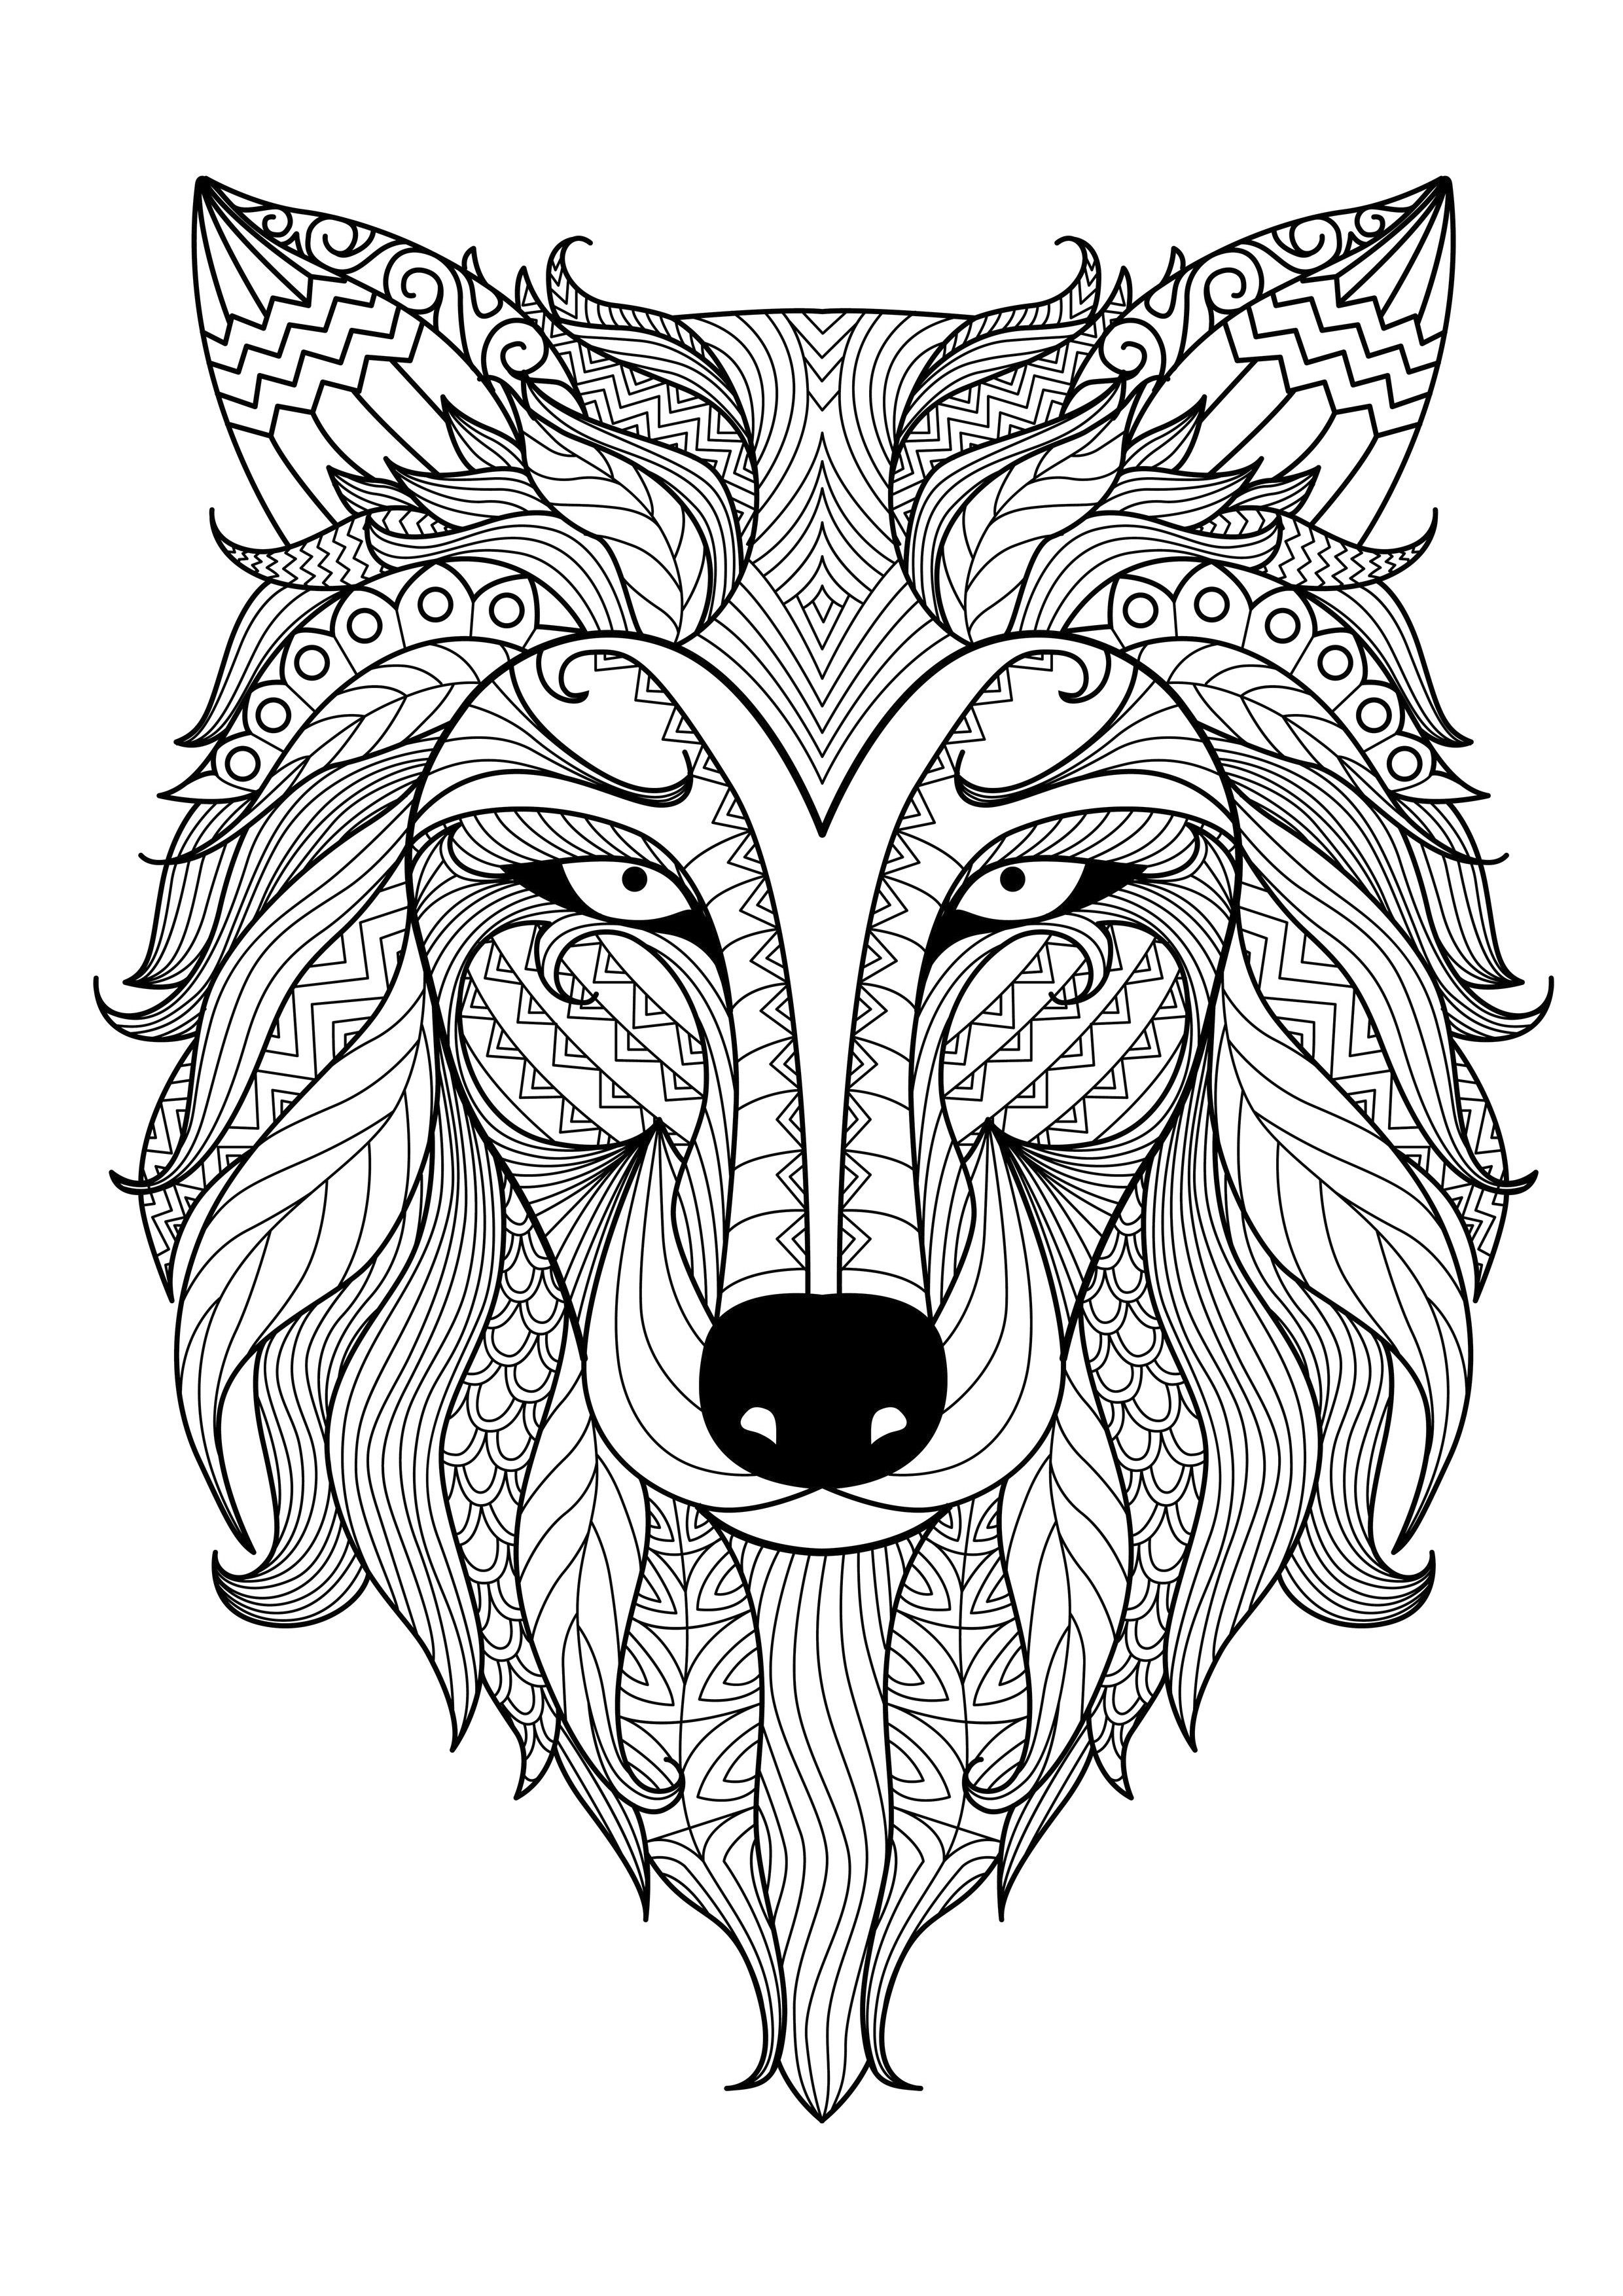 Stress relief coloring pages mandala - Free Coloring Page Coloring Incredible Wolf By Bimdeedee Incredible Adult Coloring